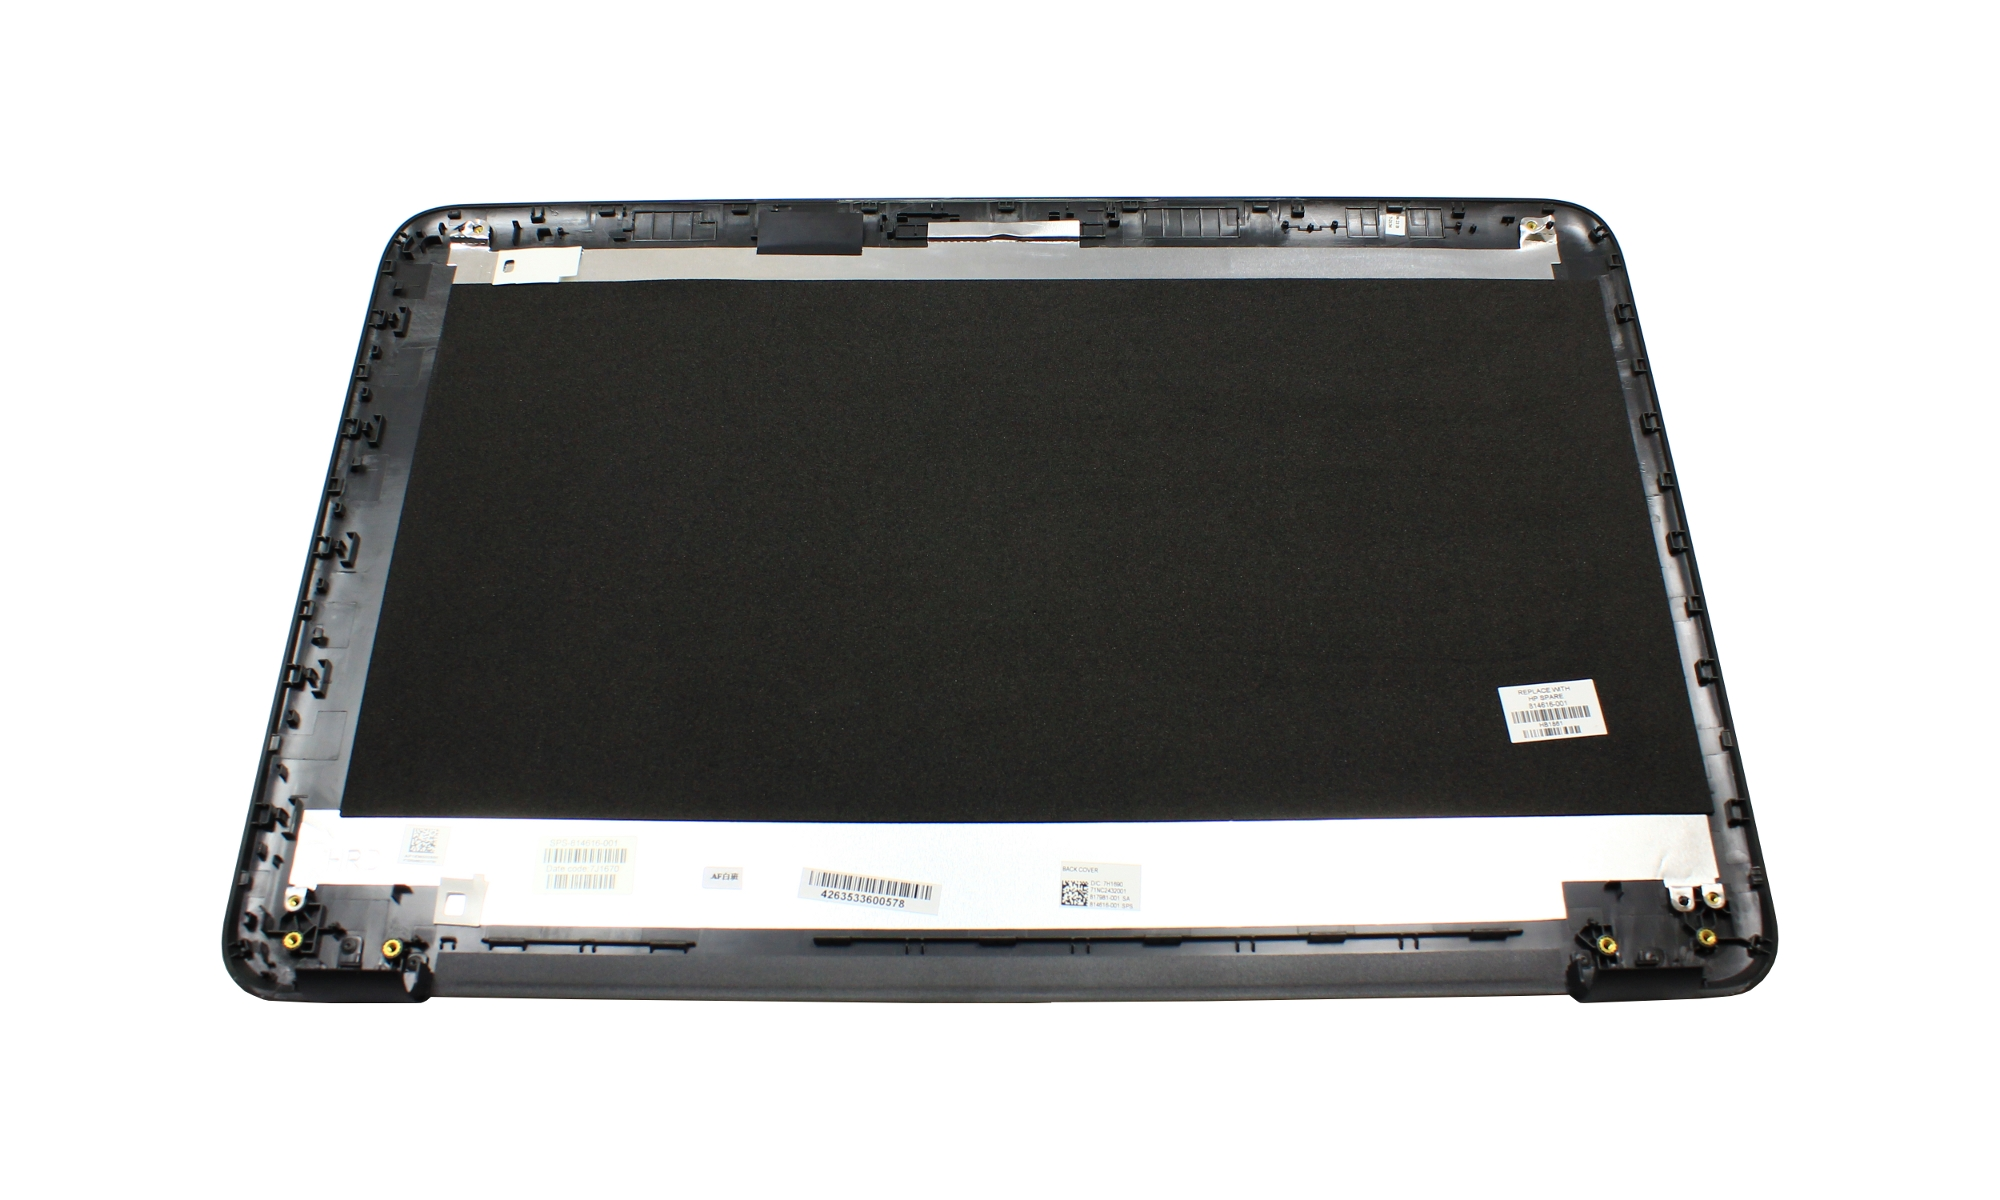 Set capac display, rama fata si balamale HP 255 G4